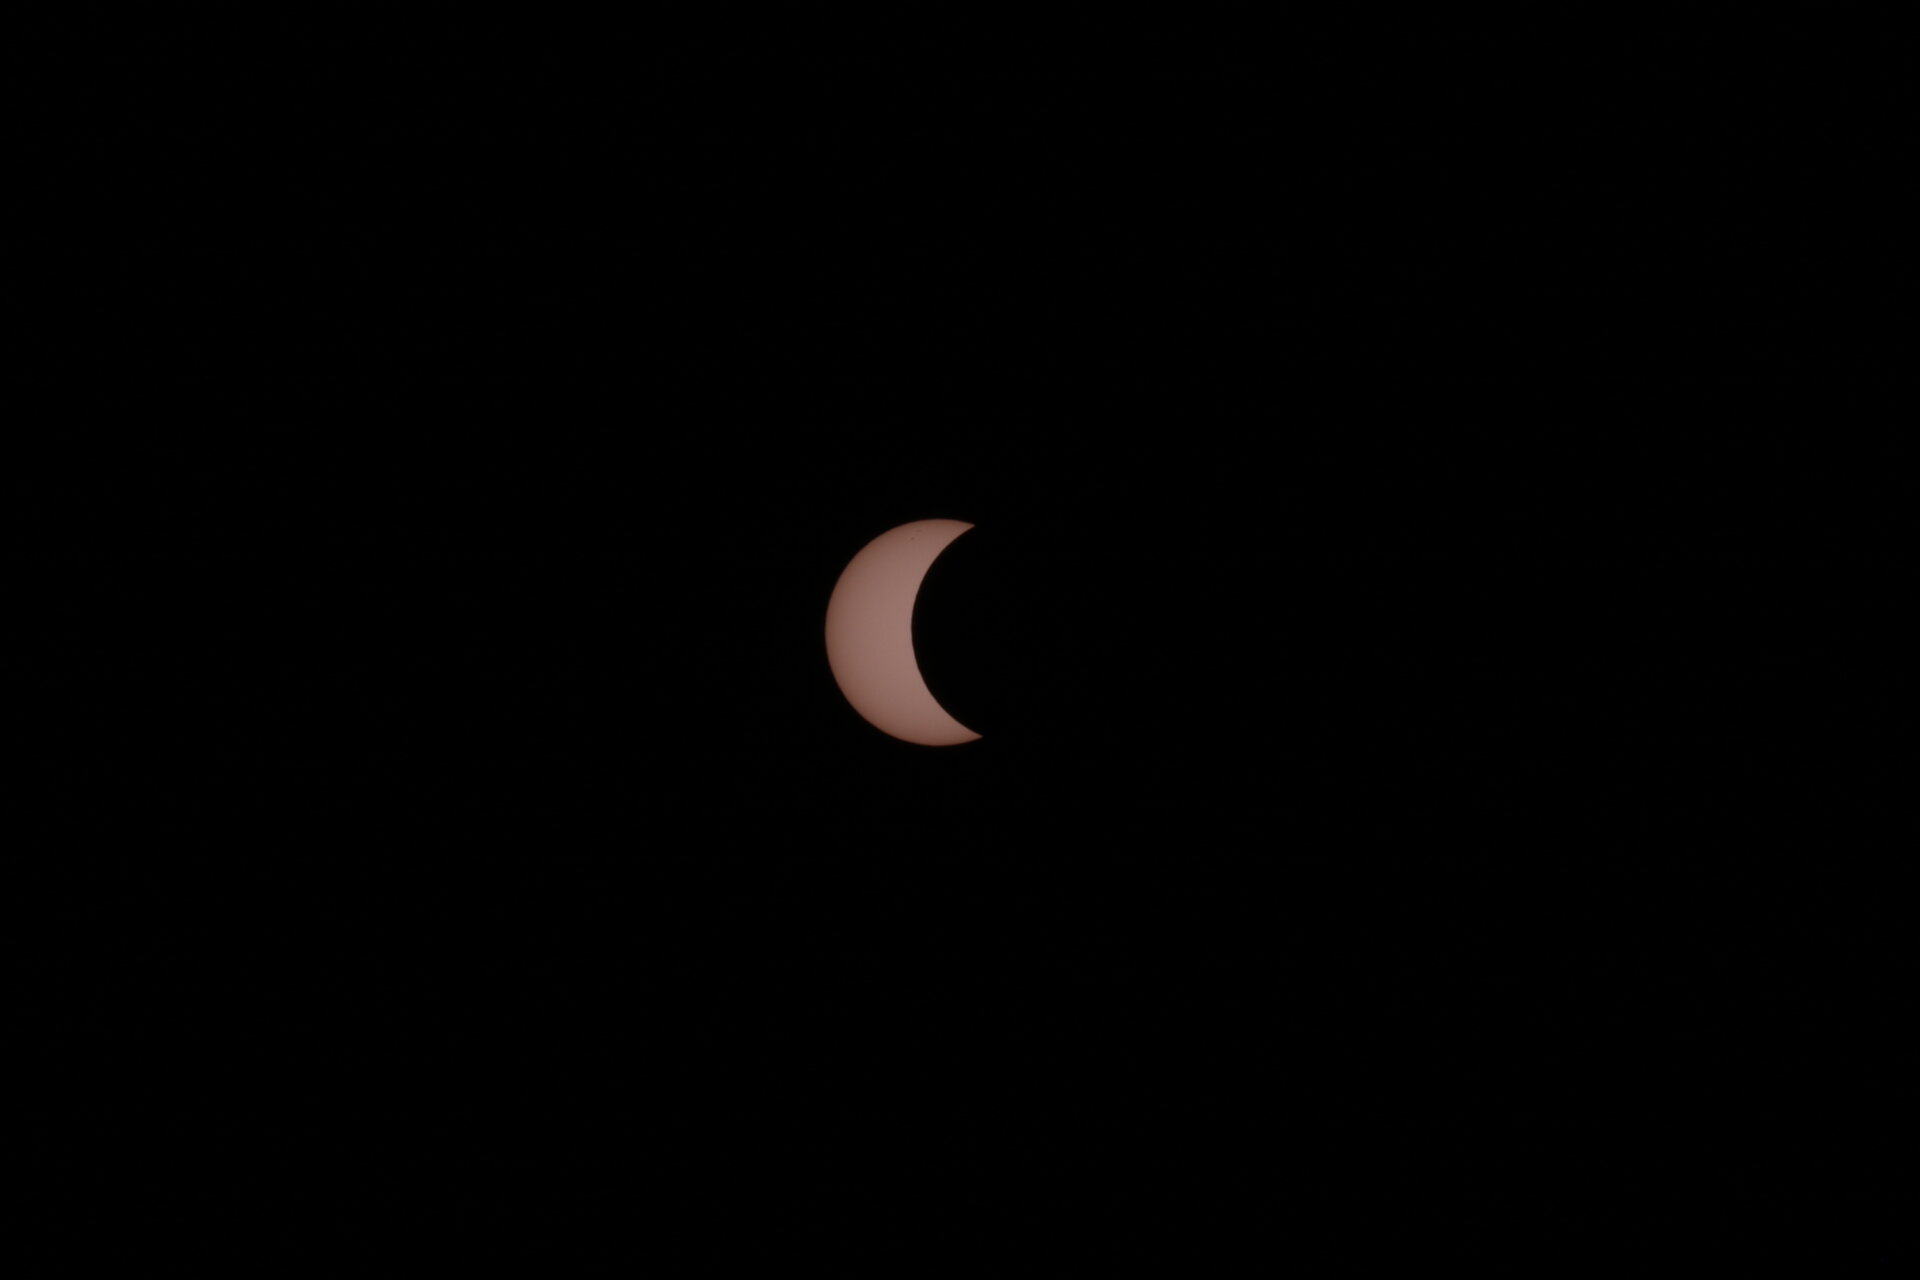 Partial eclipse from Kourou